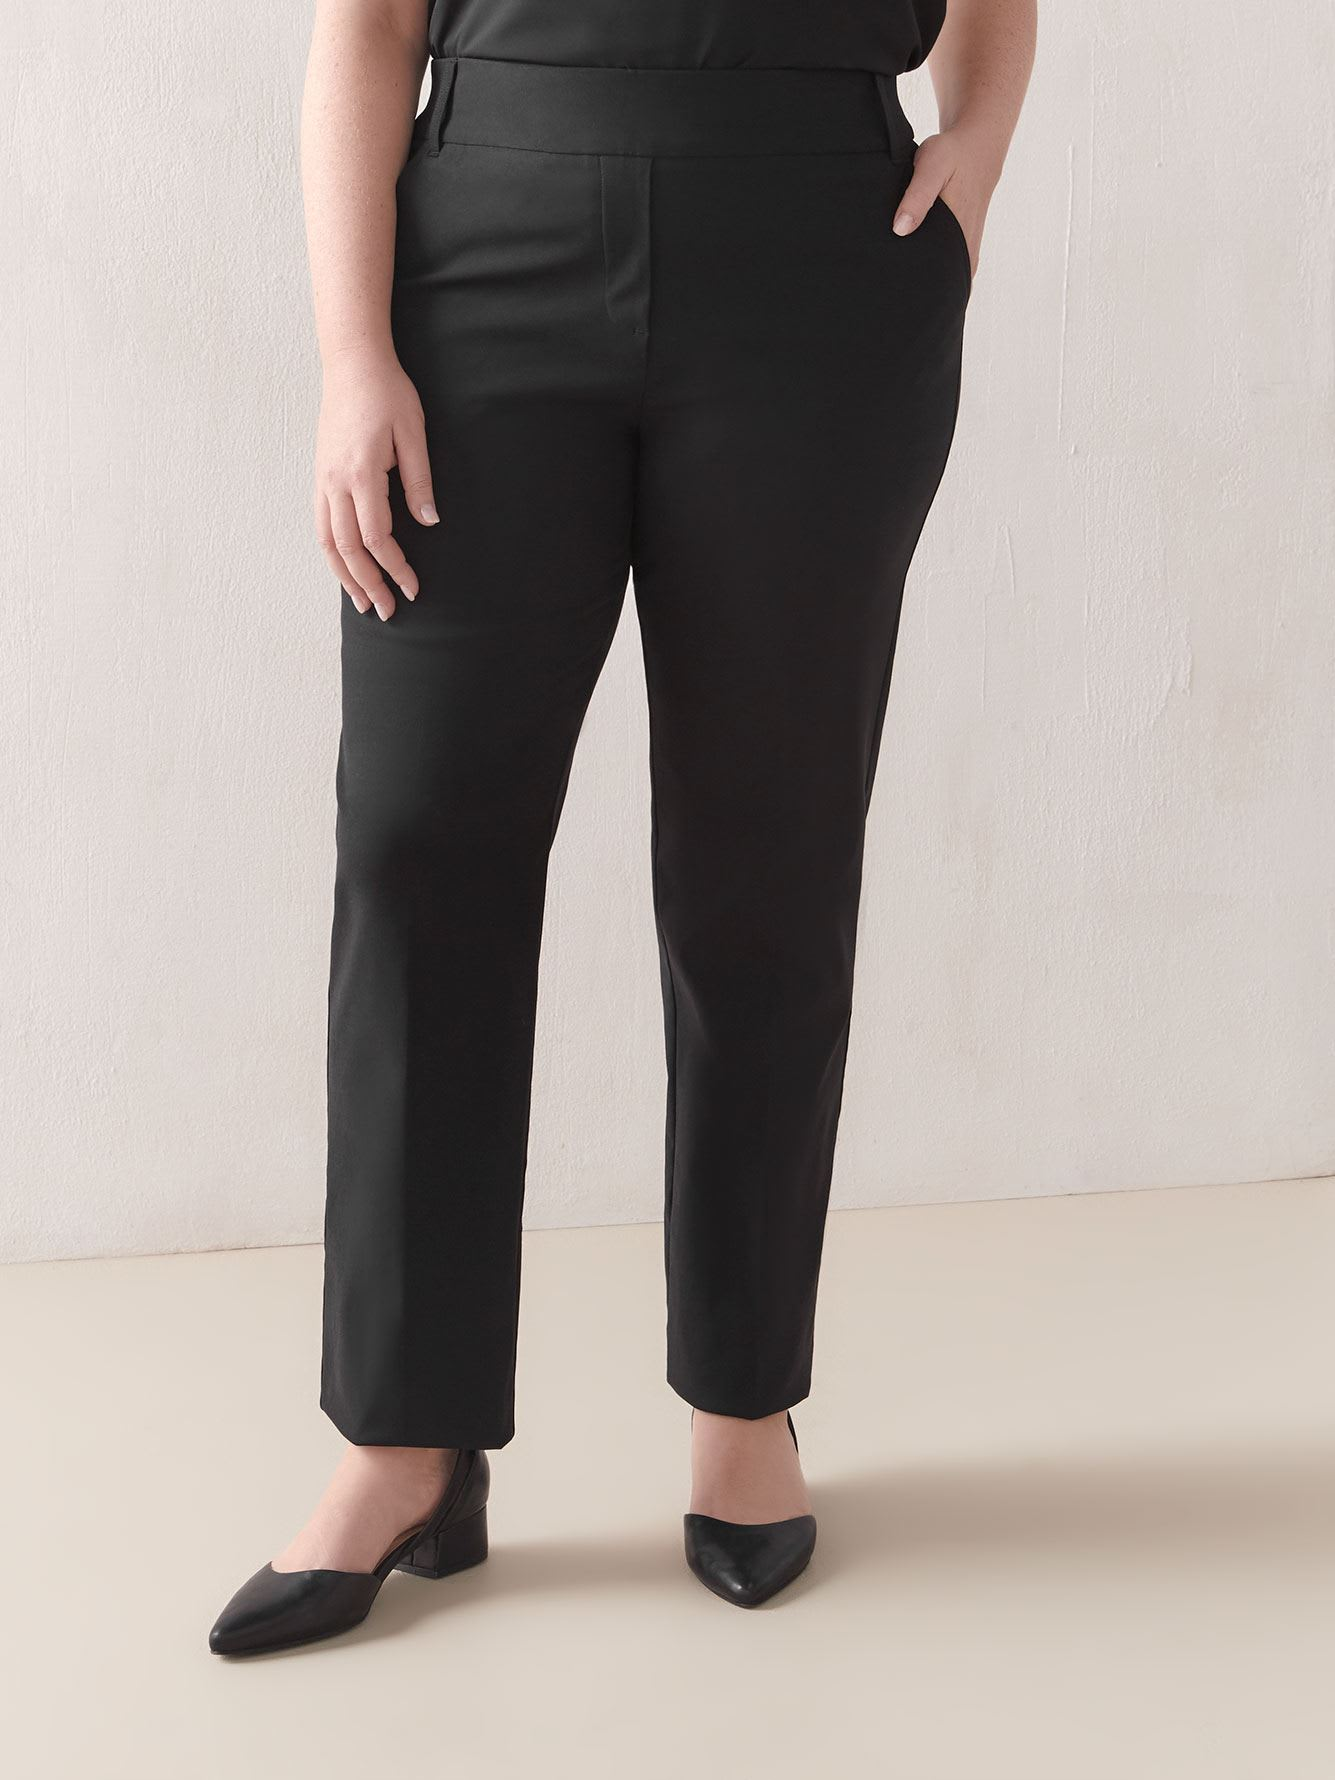 Petite, Black Straight-Leg Pant - In Every Story